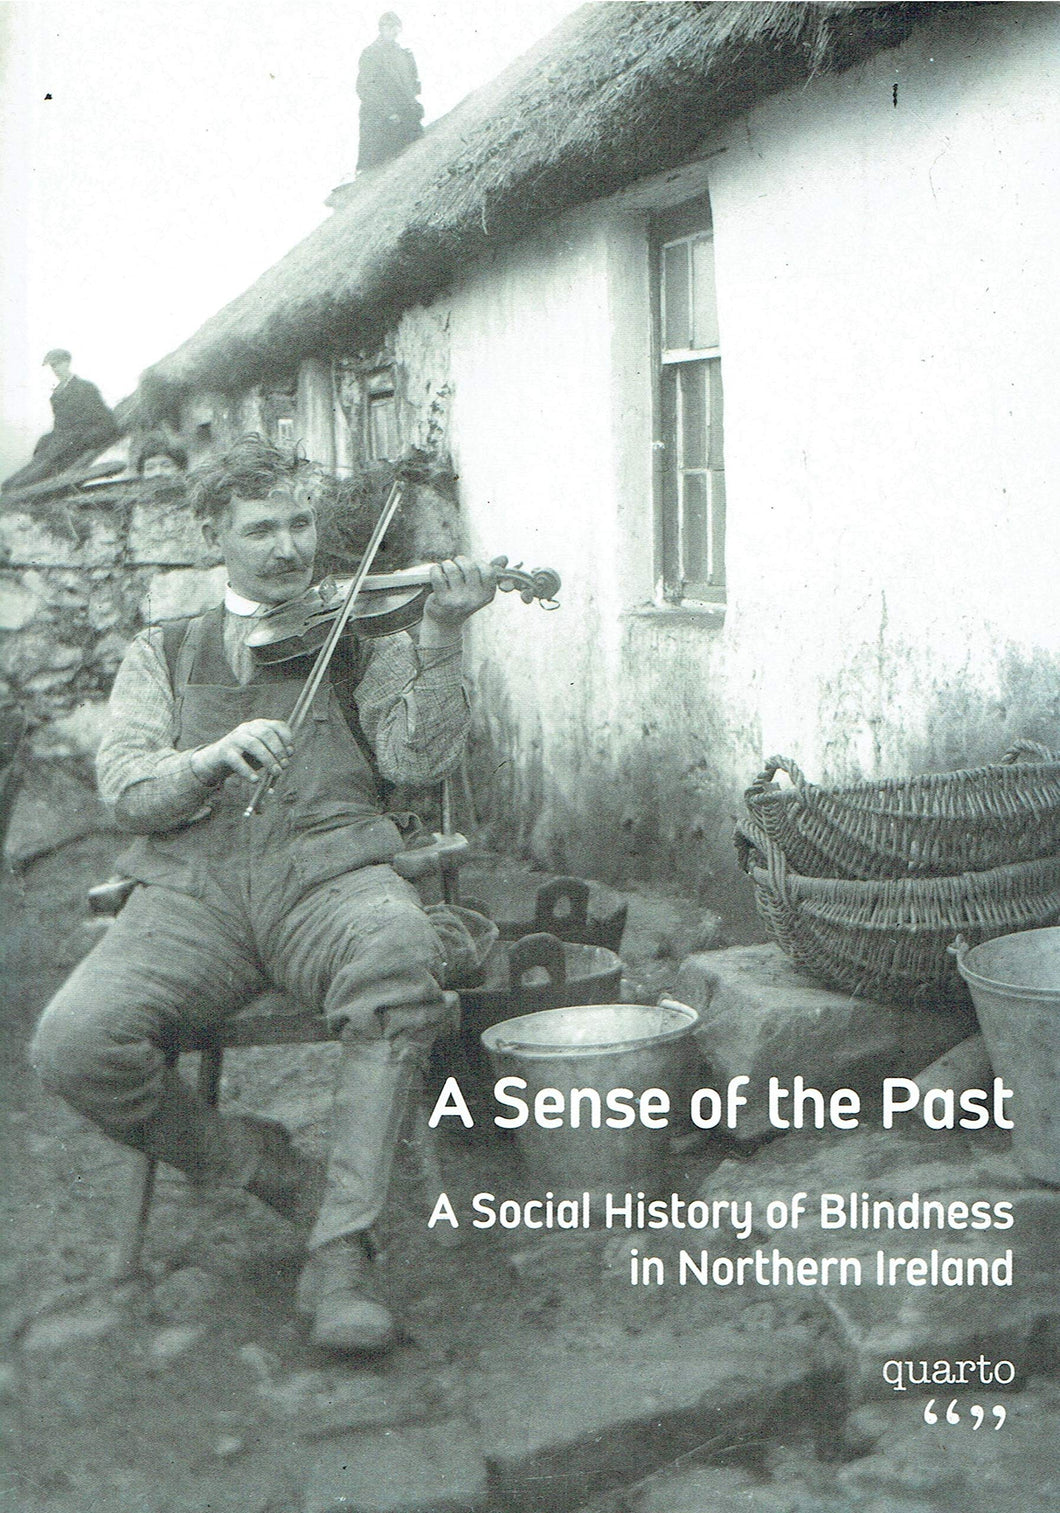 a Sense of the Past A Social History of Blindness in Northern Ireland